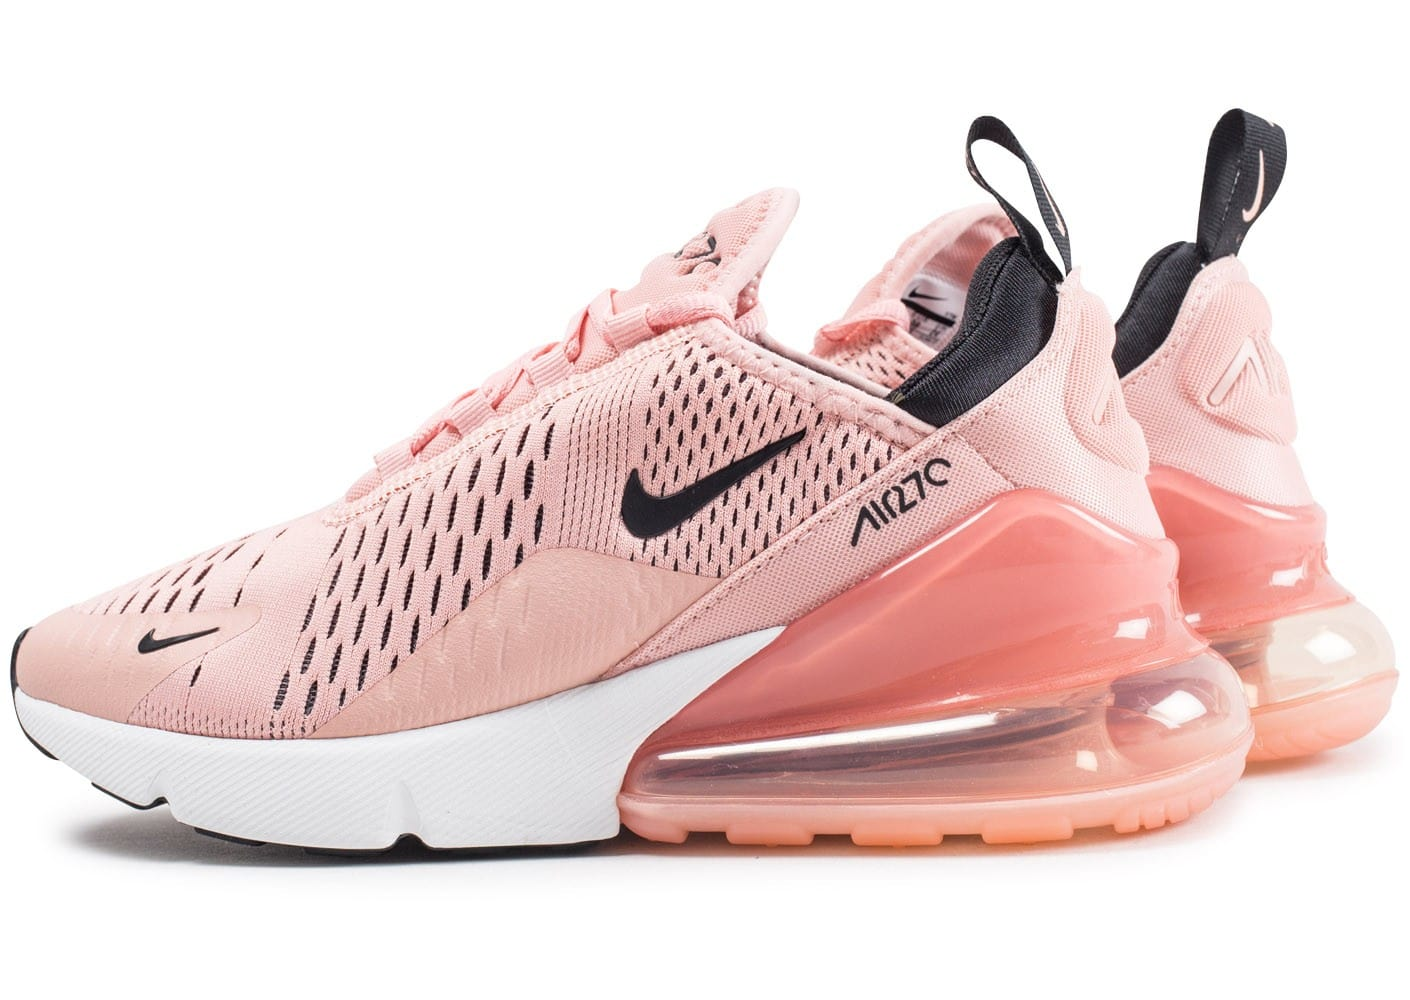 nike air max 270 corail poussi re d 39 toile chaussures femme chausport. Black Bedroom Furniture Sets. Home Design Ideas